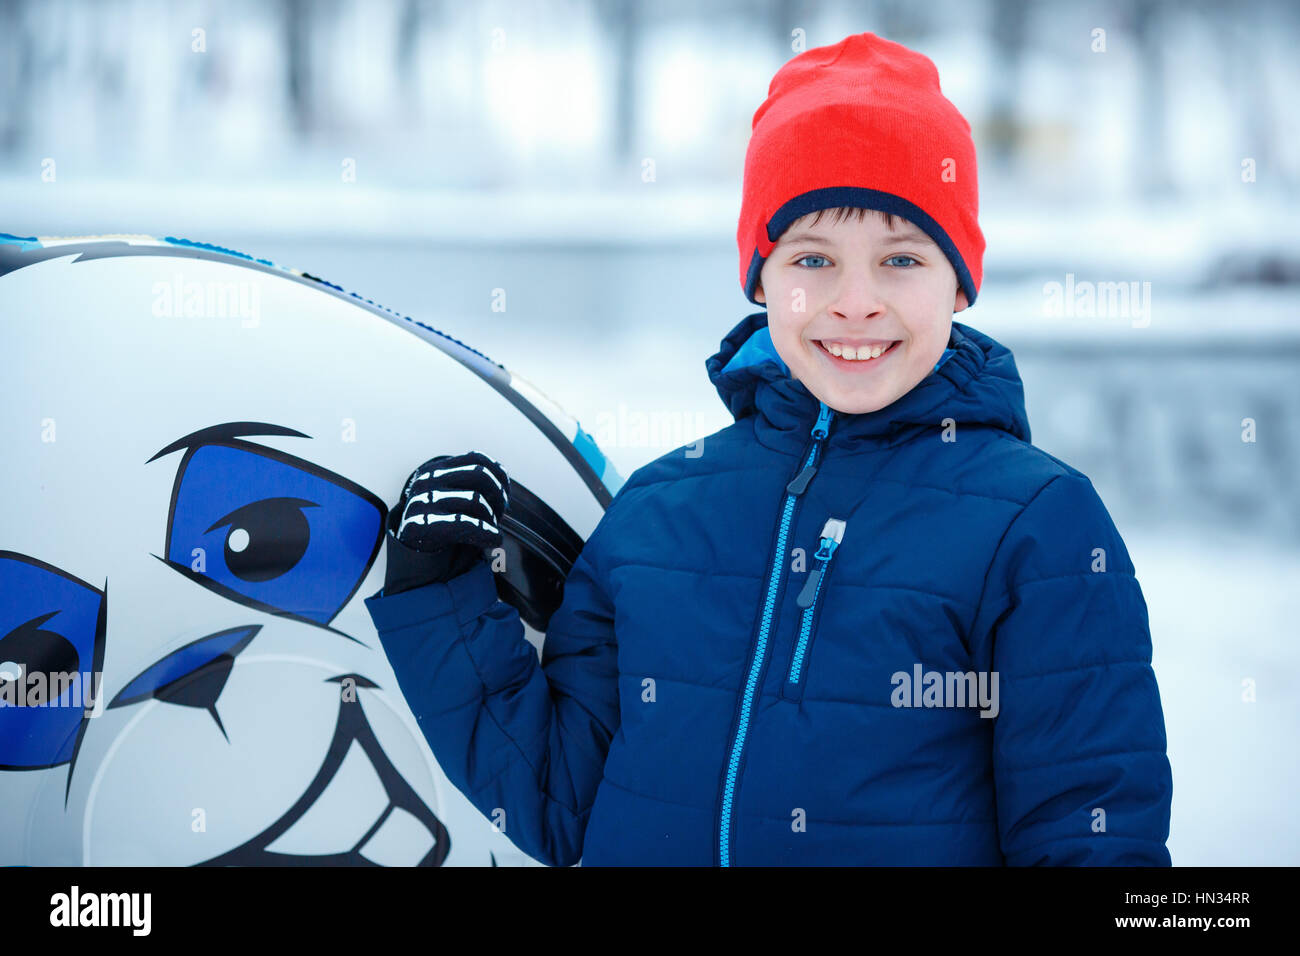 69ca3207f Cute little boy with snow tube playing outdoors Stock Photo ...